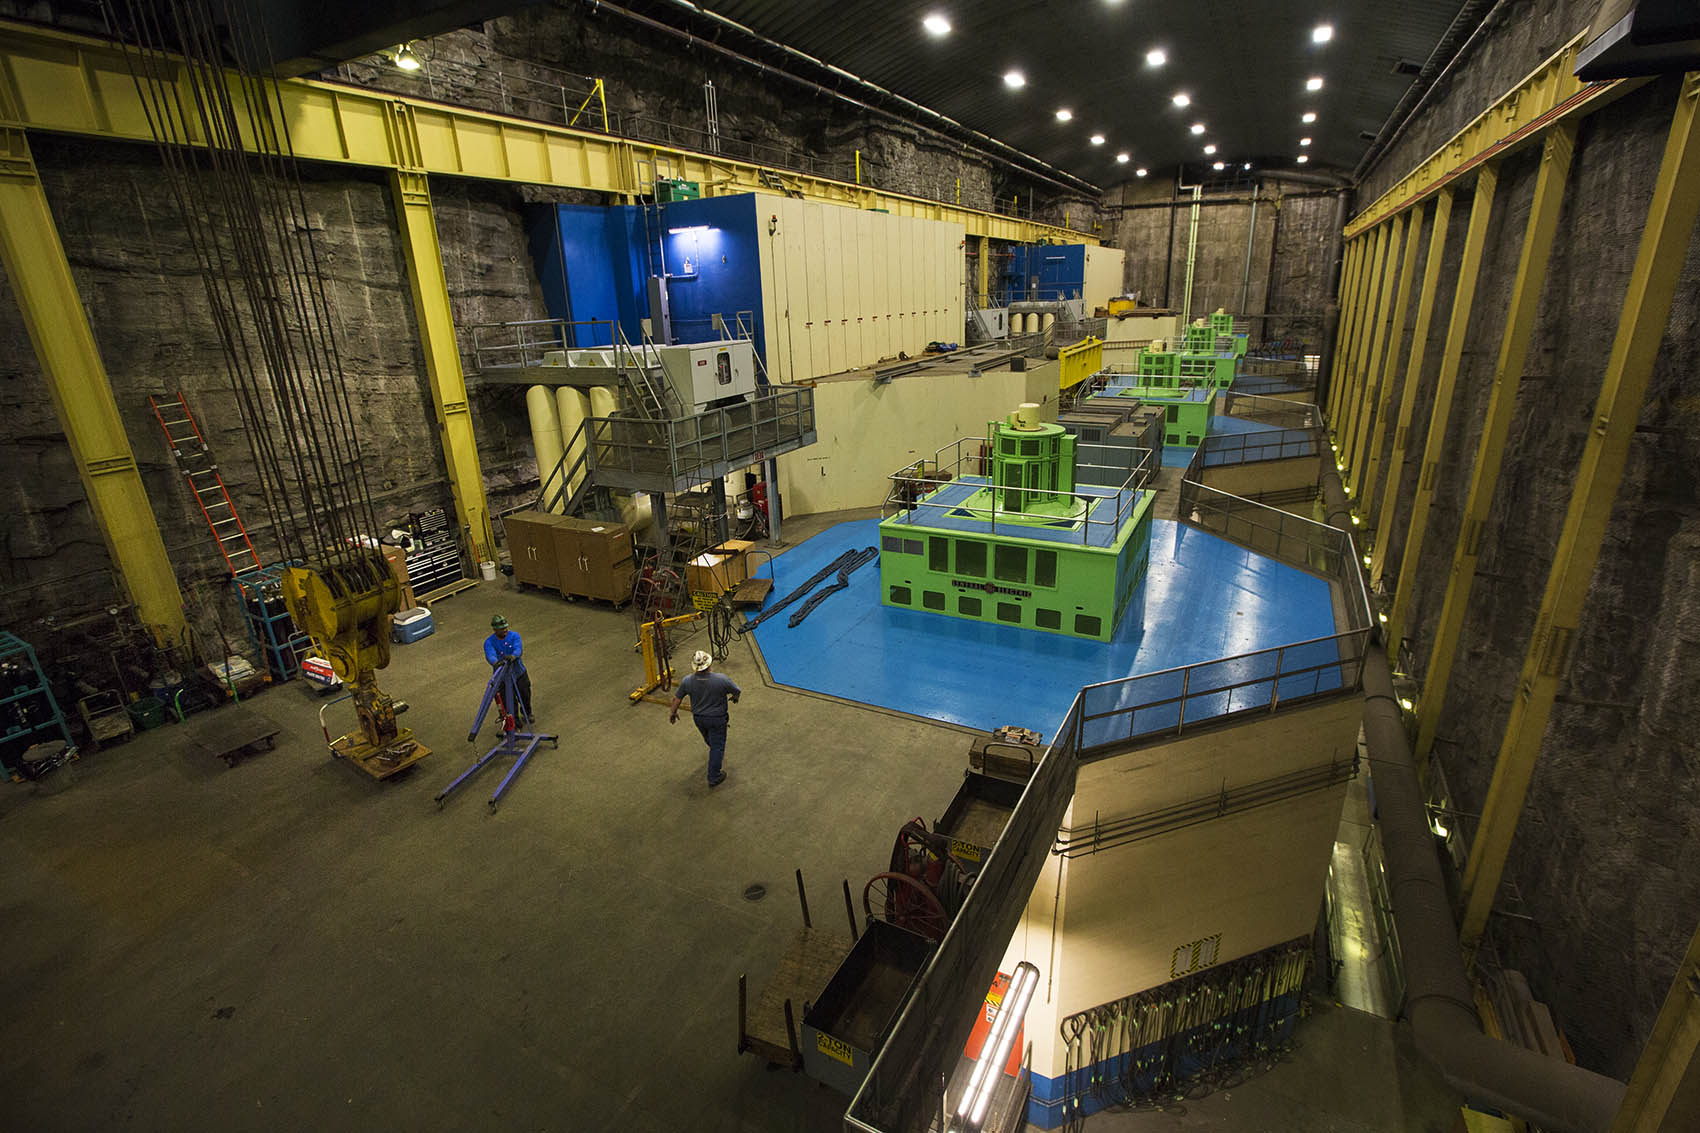 Inside the Northfield Mountain pumped storage hydroelectric station (Jesse Costa/WBUR)